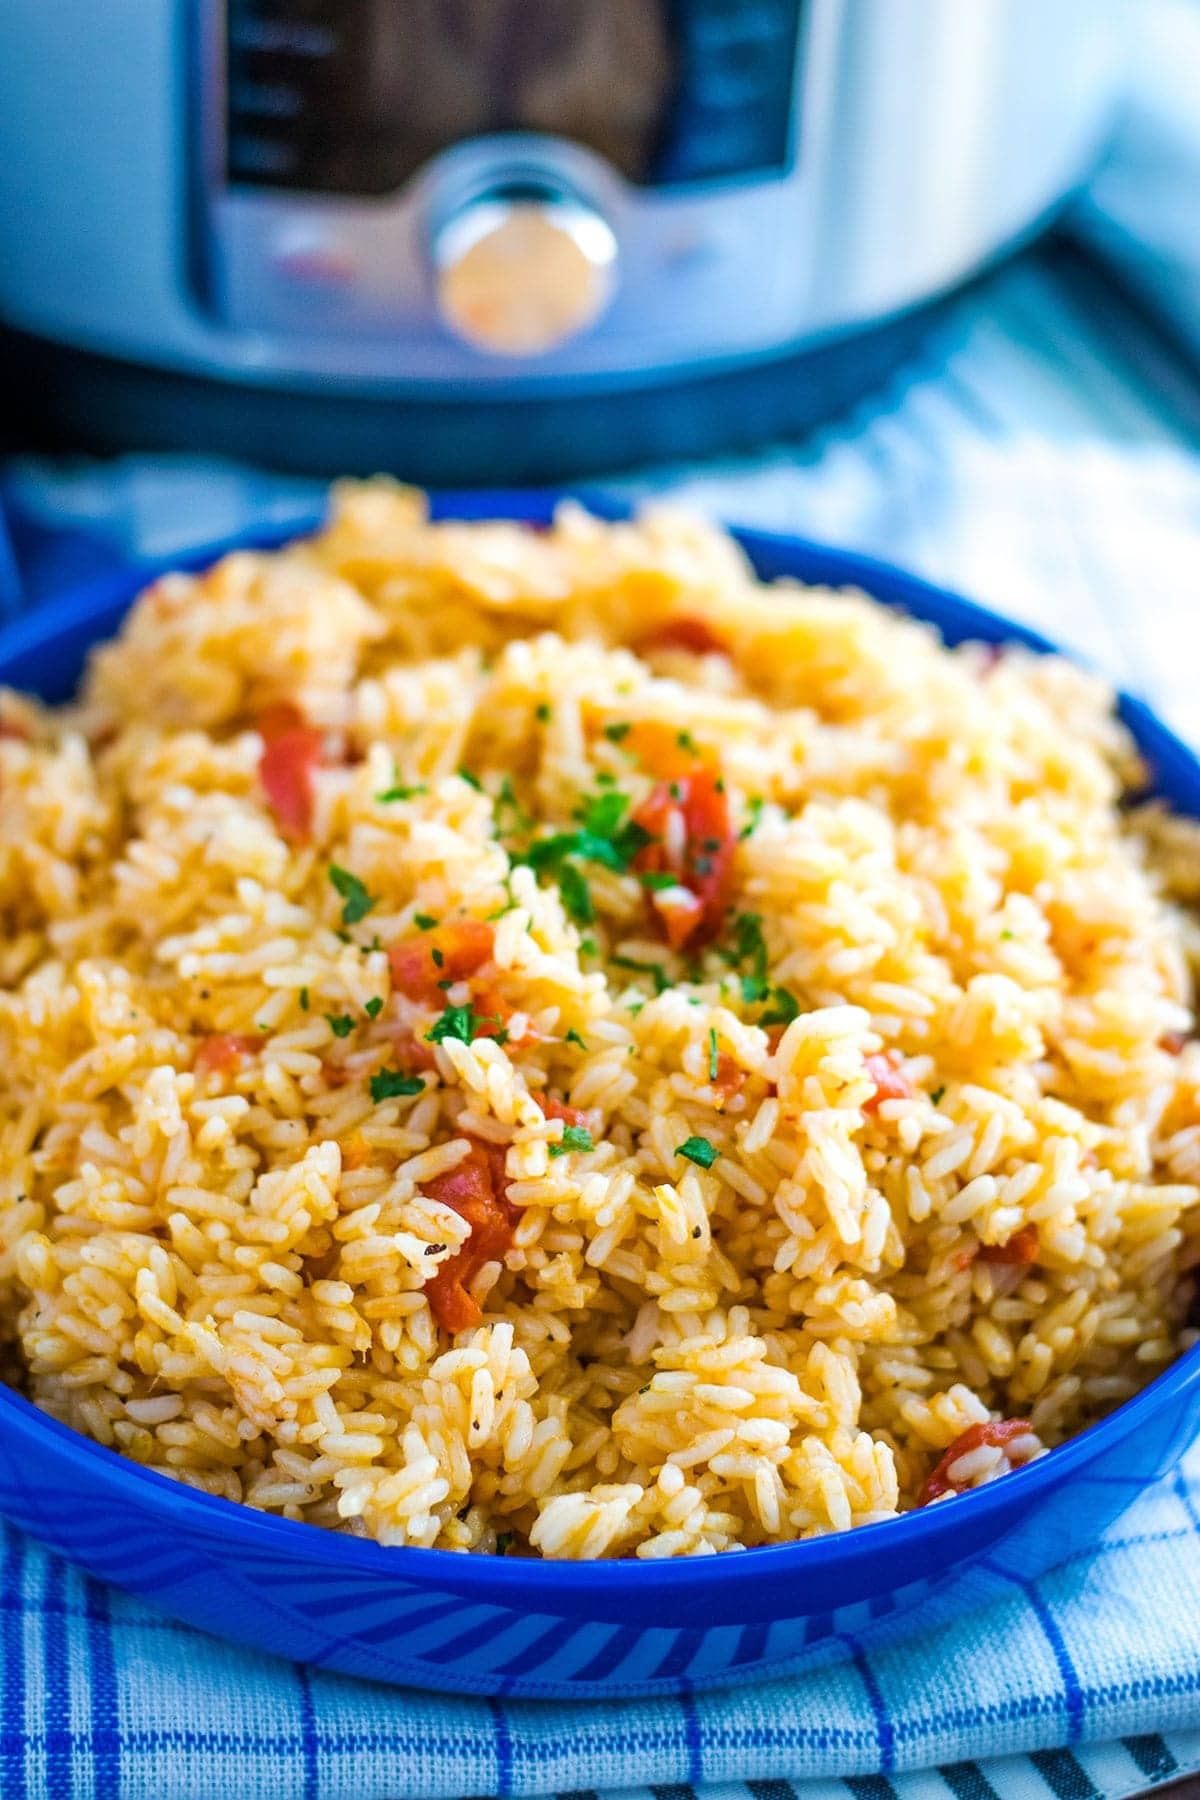 Instant Pot Tomatoes and Rice in a blue serving dish